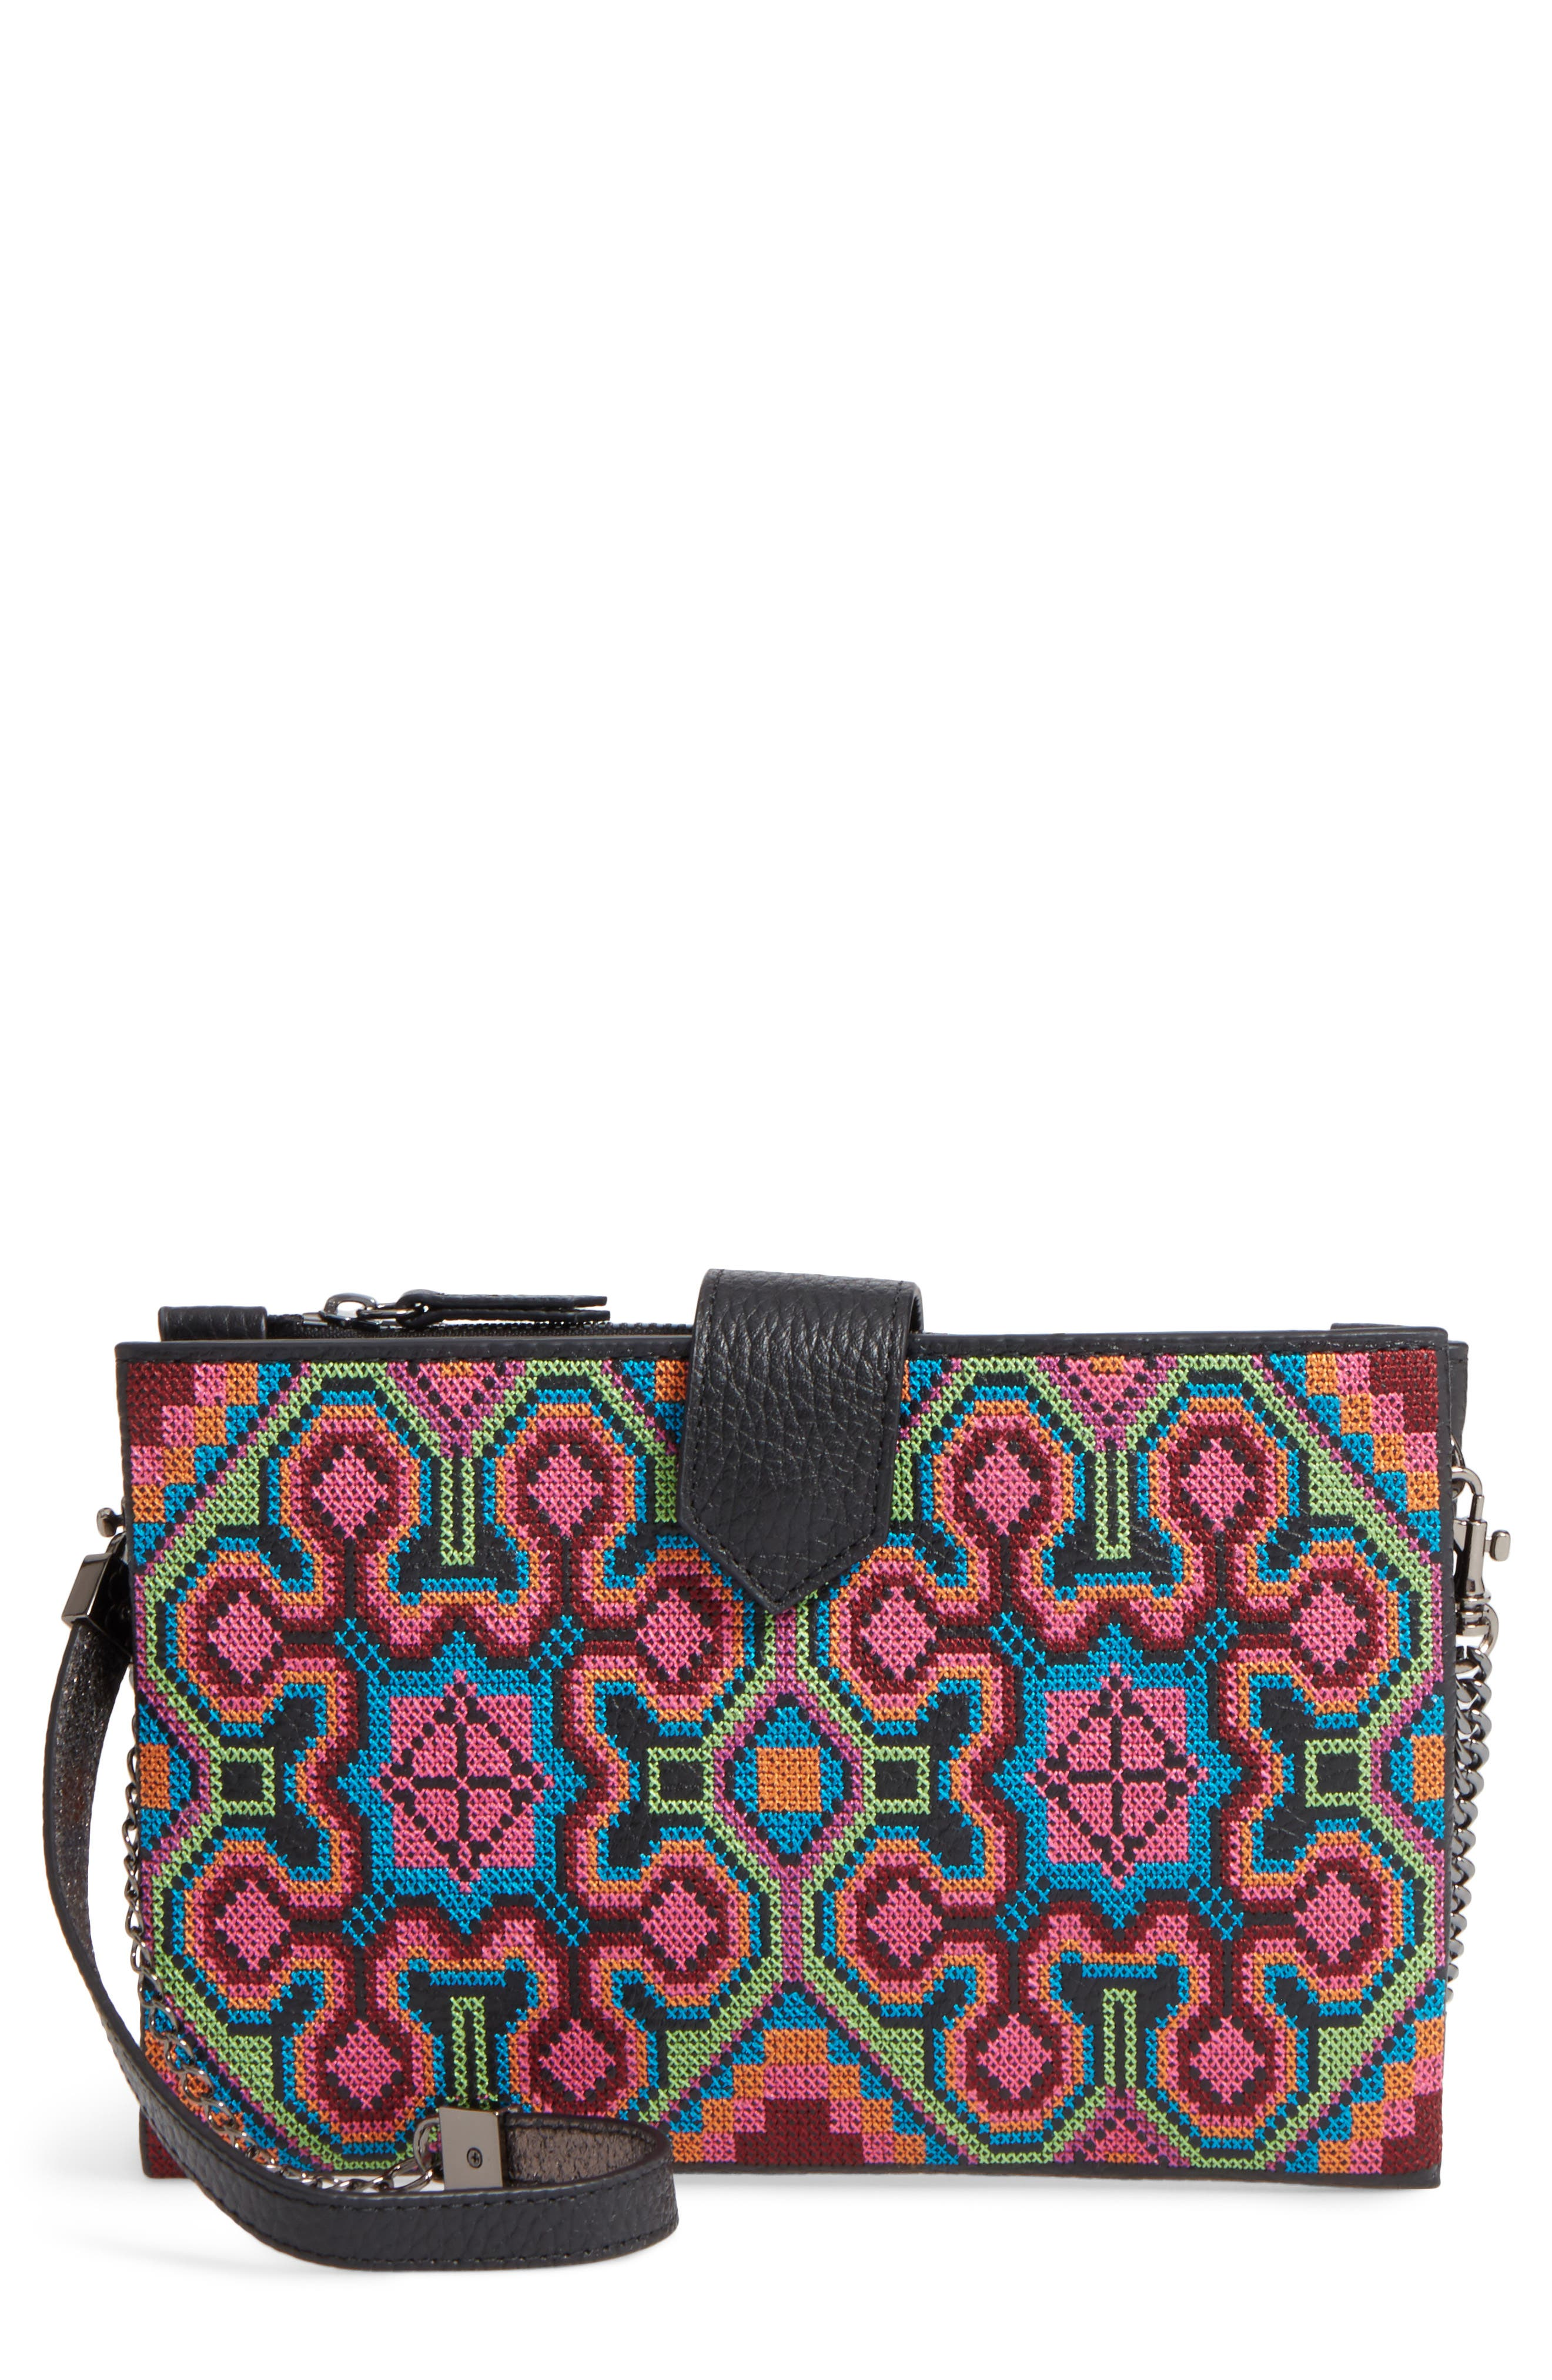 Botkier Pouch Crossbody Bag (Nordstrom Exclusive)